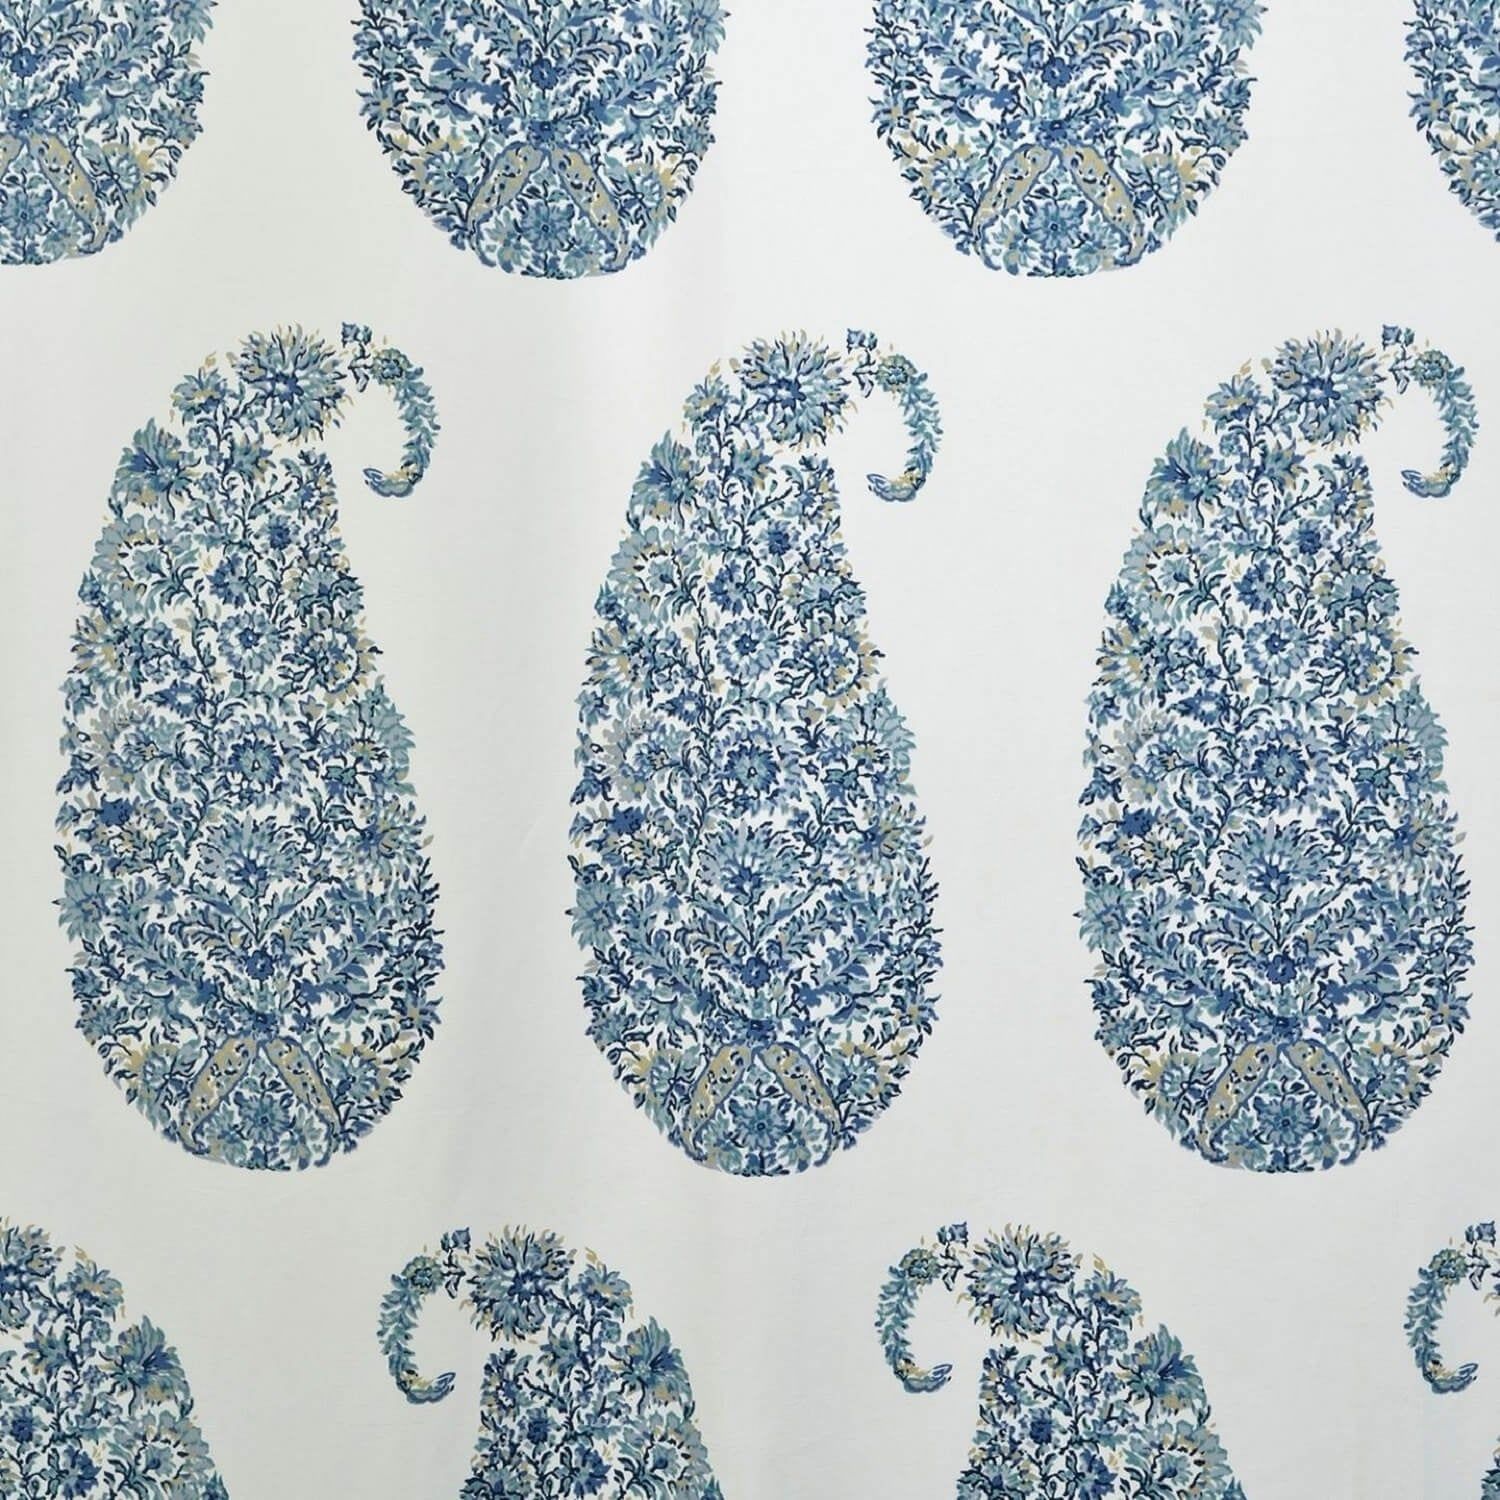 db15b38affa7 Shop Exclusive Fabrics Paisley Park Printed Cotton Twill Curtain Panel - On  Sale - Free Shipping Today - Overstock - 10768883